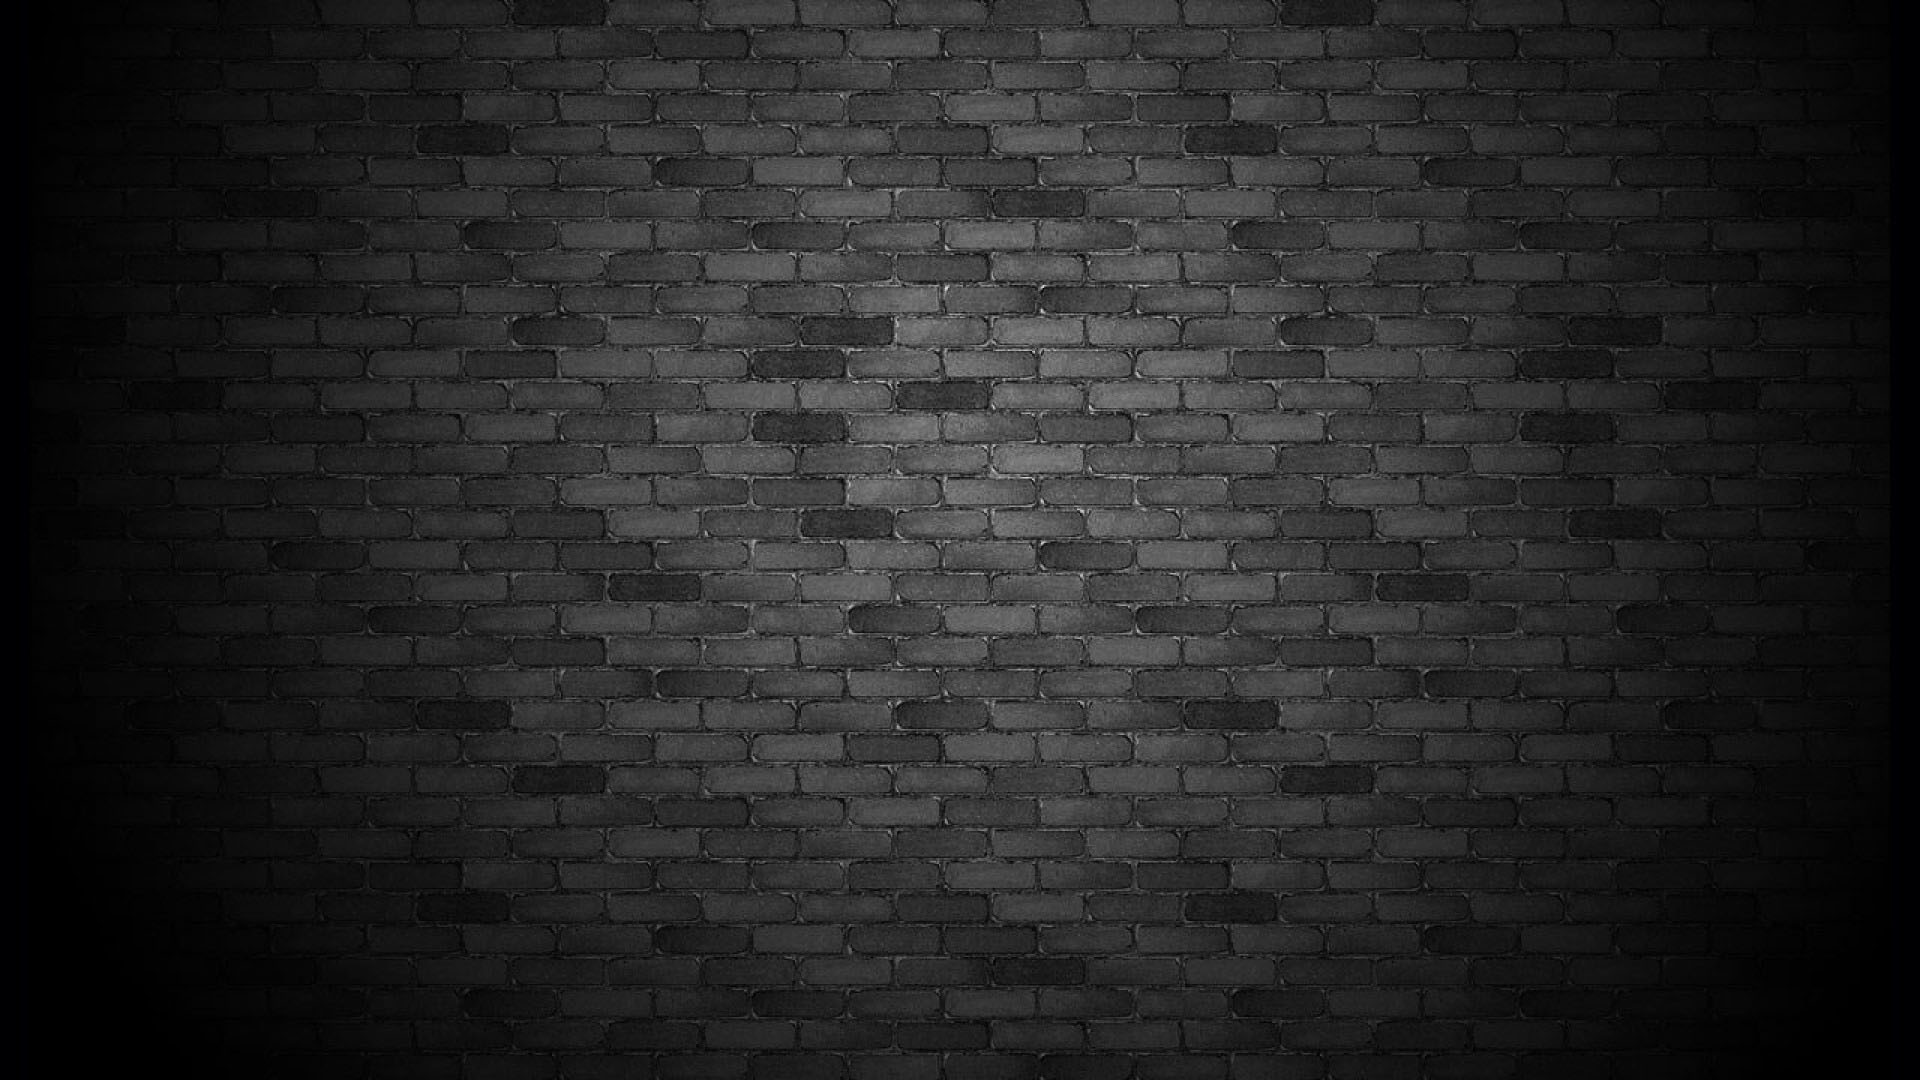 Black-Brick-Wall-Background - One Fitness Kickboxing